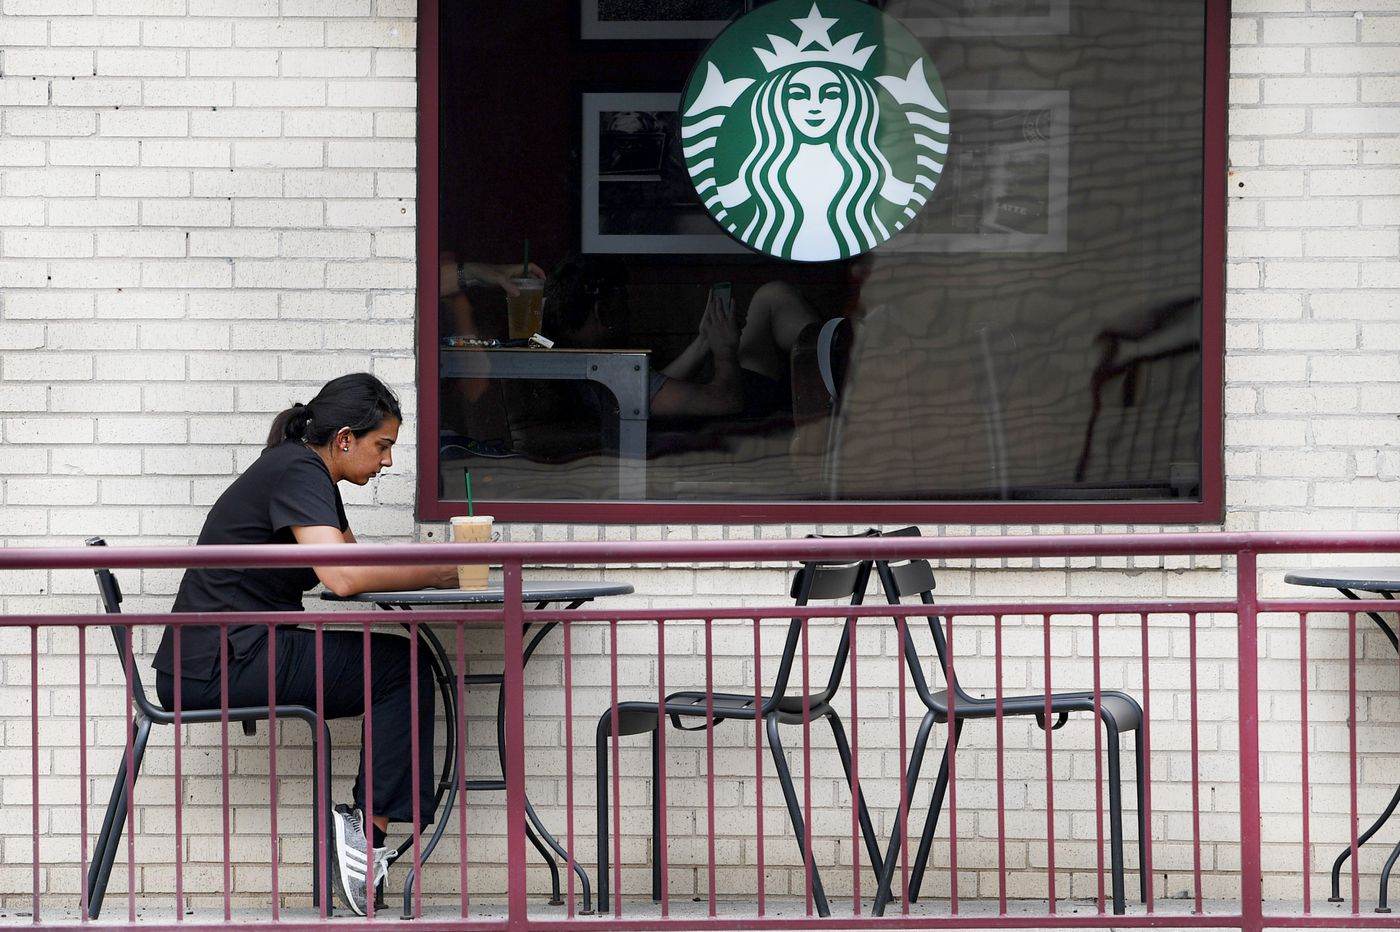 Consumers, coffee shops see changes after Starbucks incidents — but will they last?